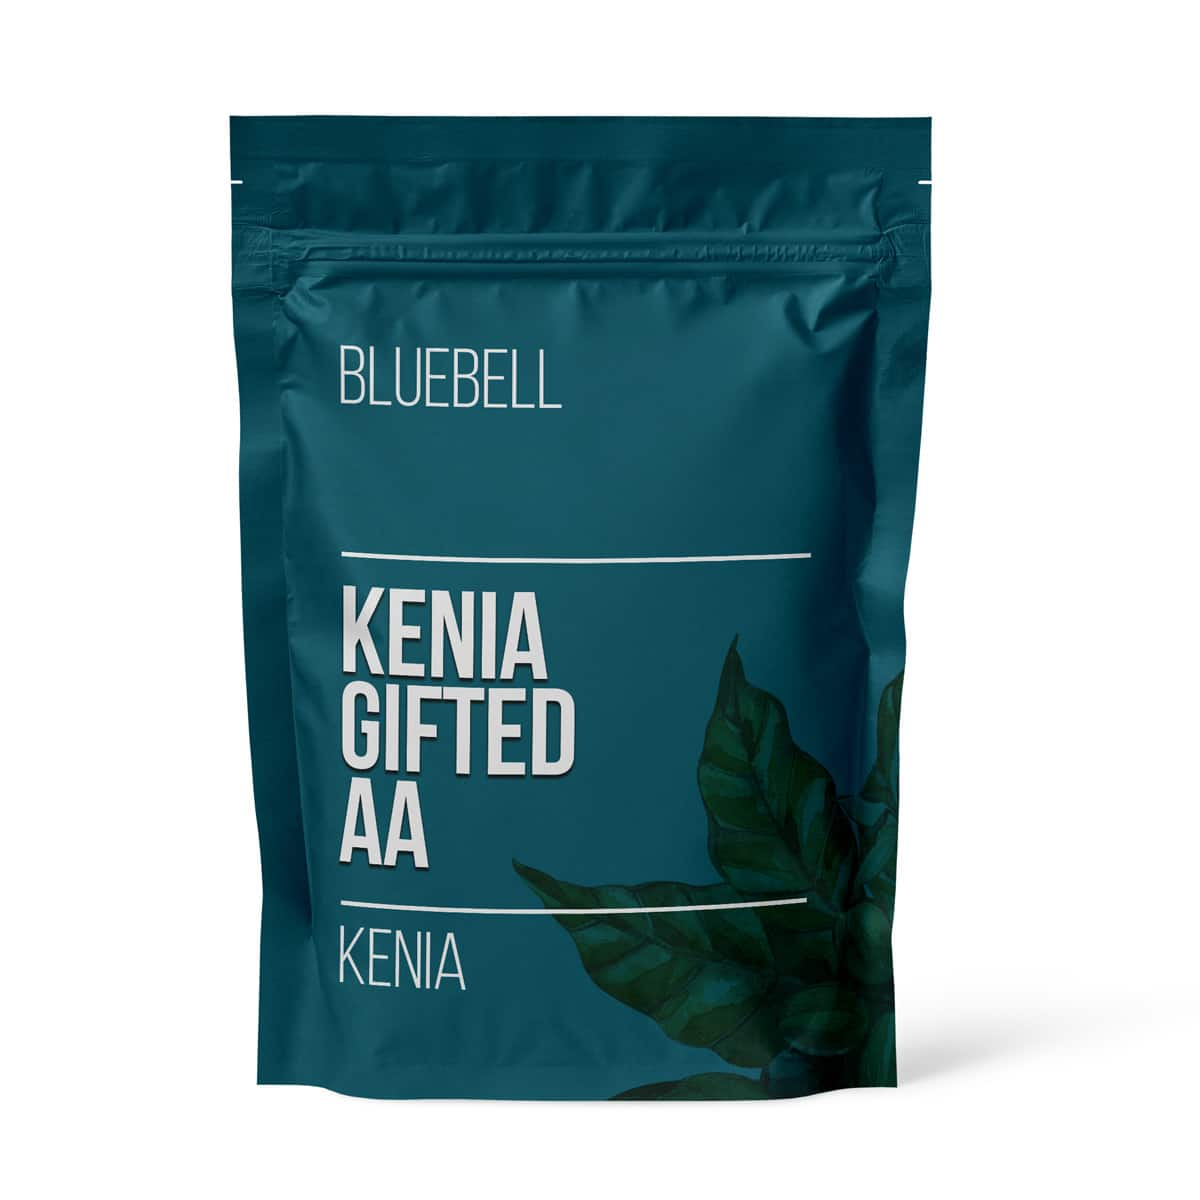 BlueBell – Kenia Gifted AA